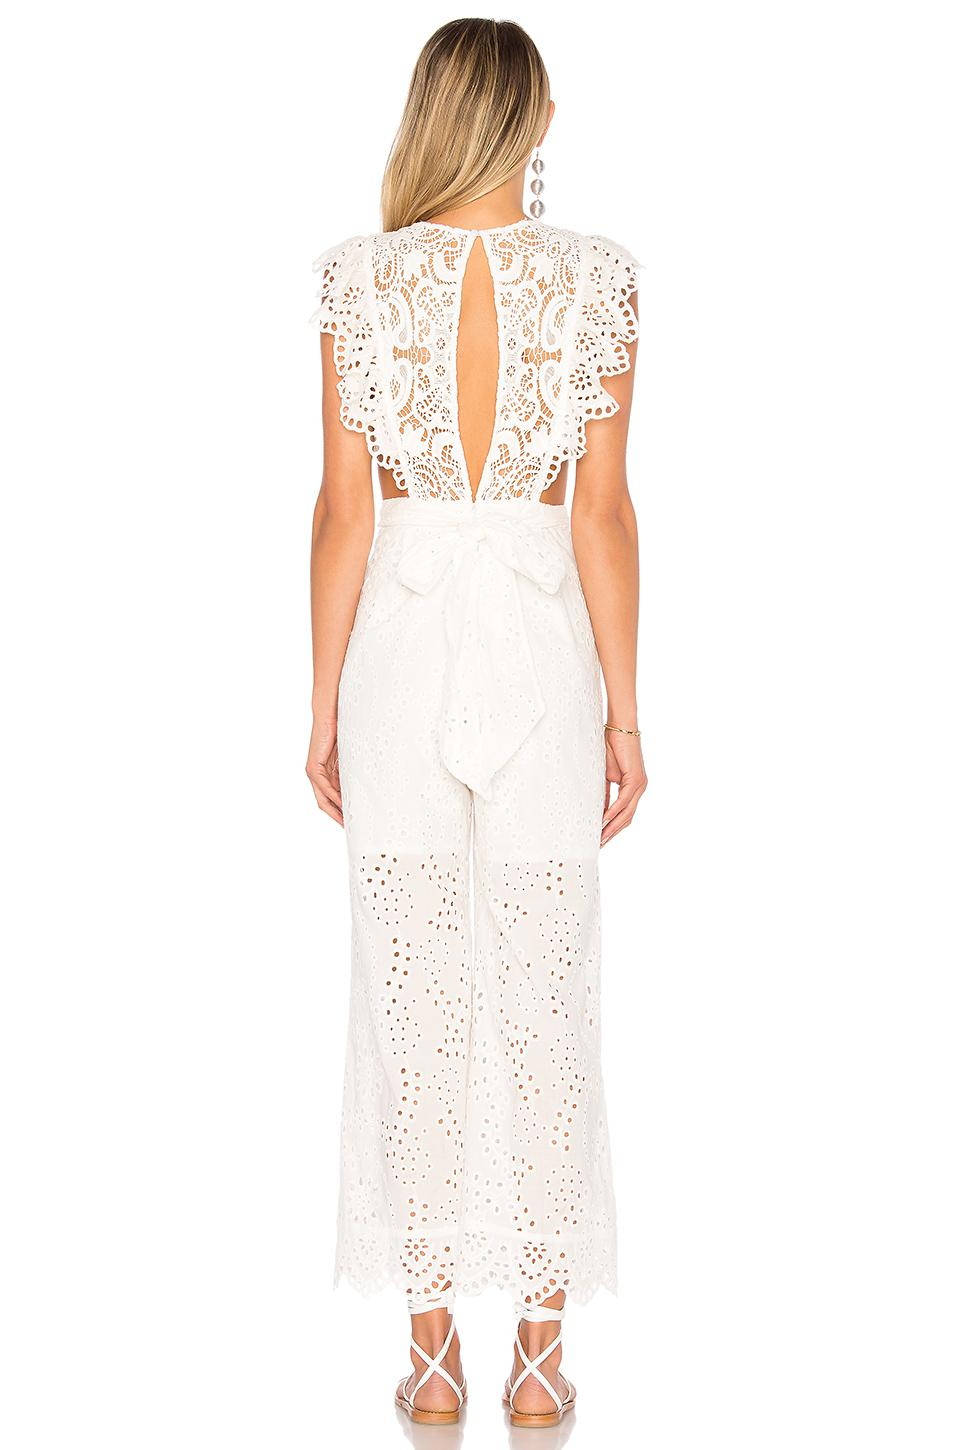 d18d66b81f1 Lyst - Nightcap Eyelet Apron Jumpsuit in White